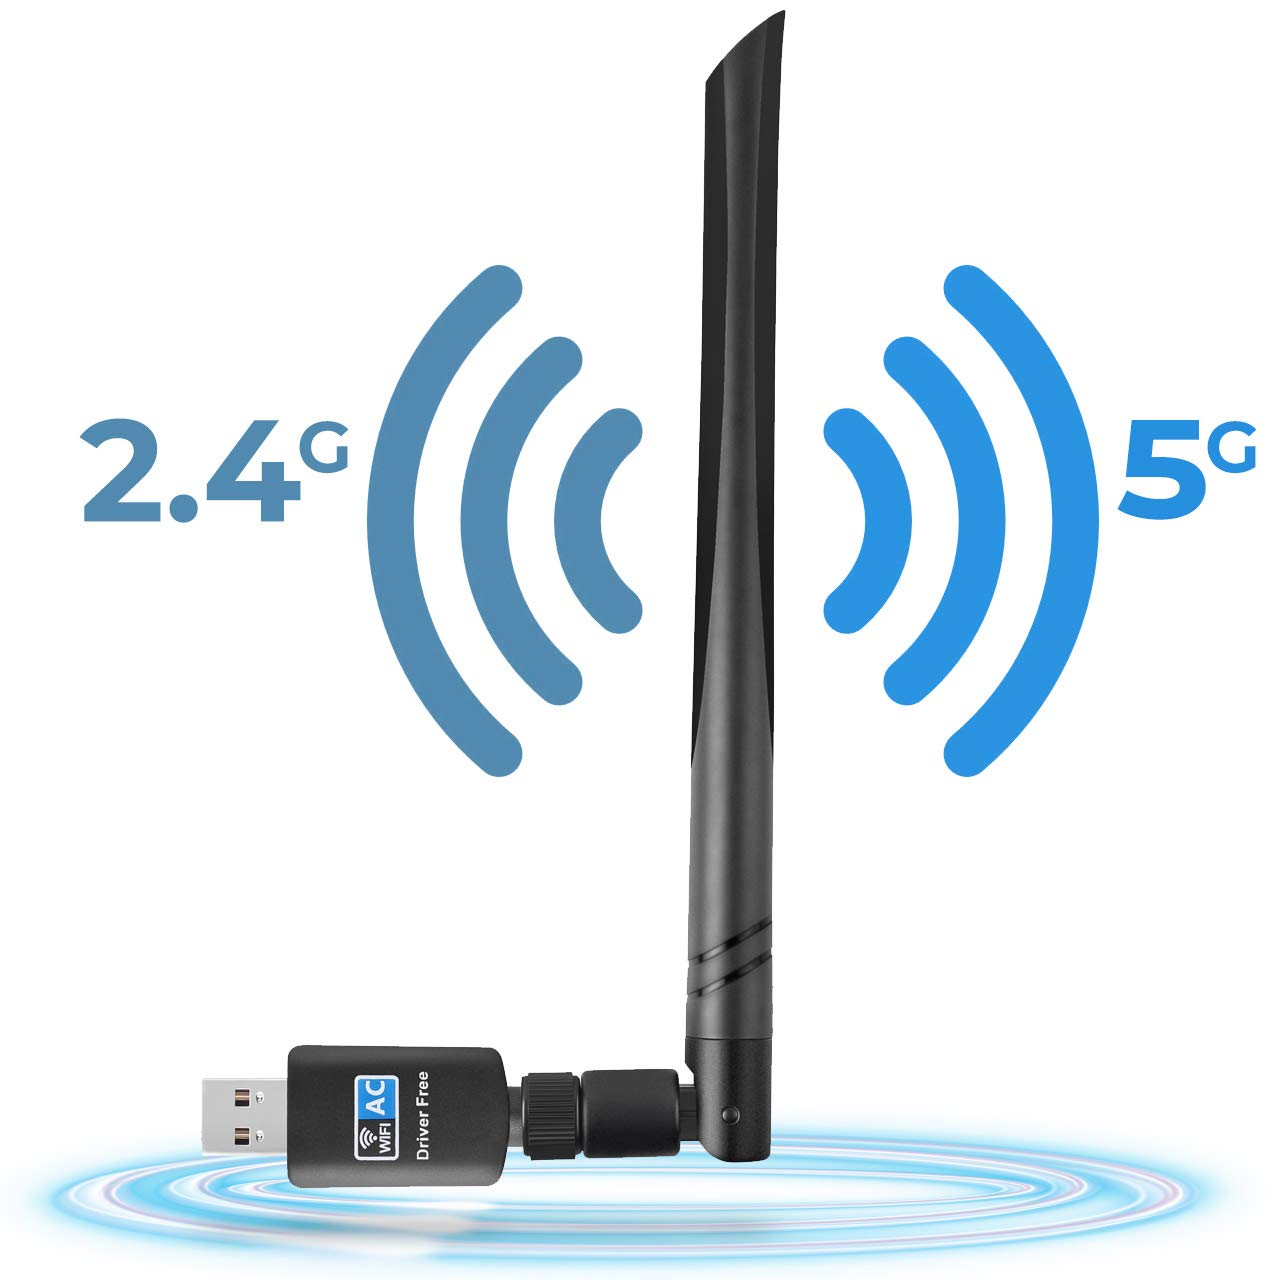 Wireless Network Adapter 802.11ac USB WiFi Adapter 600Mbps Dual Band 2.4GHz and 5.8GHz Compatible with Windows 10/8/7/Vista/XP Mac OS, No CD Network Card Wireless Network WiFi Dongle with 5dBi Antenna by Tauracle